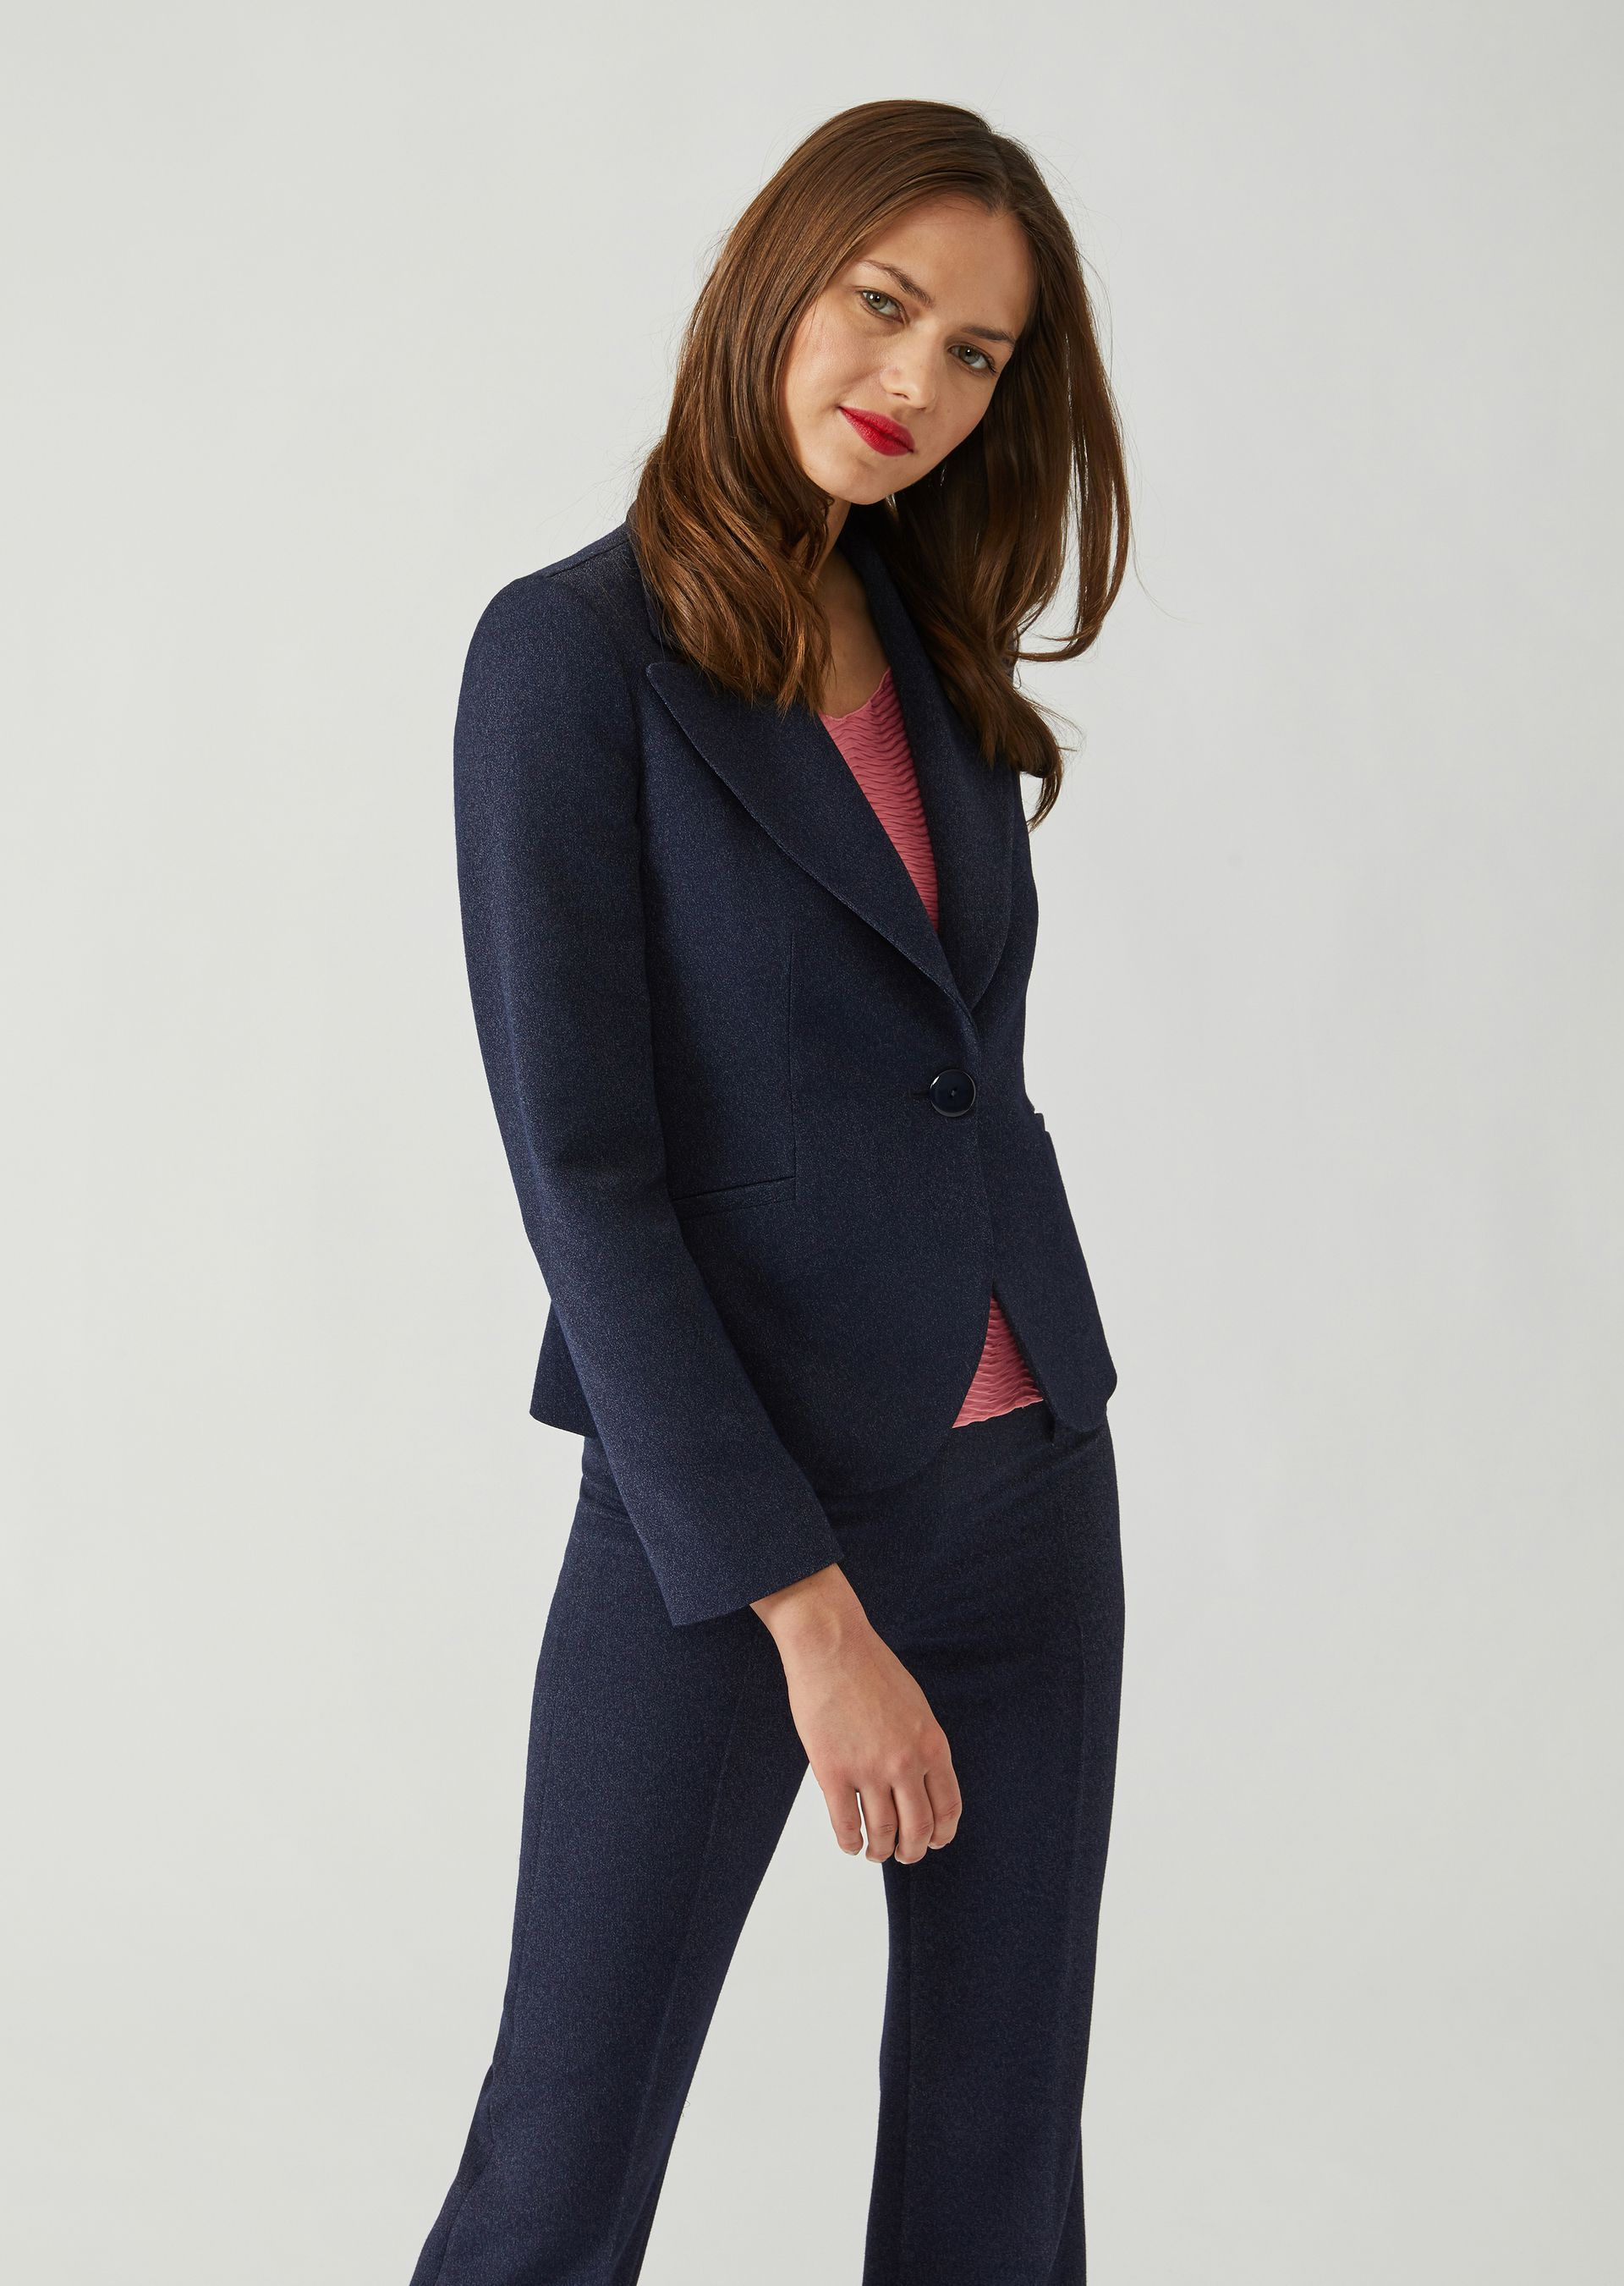 Casual Jackets - Item 41843821, Pattern from ARMANI.COM